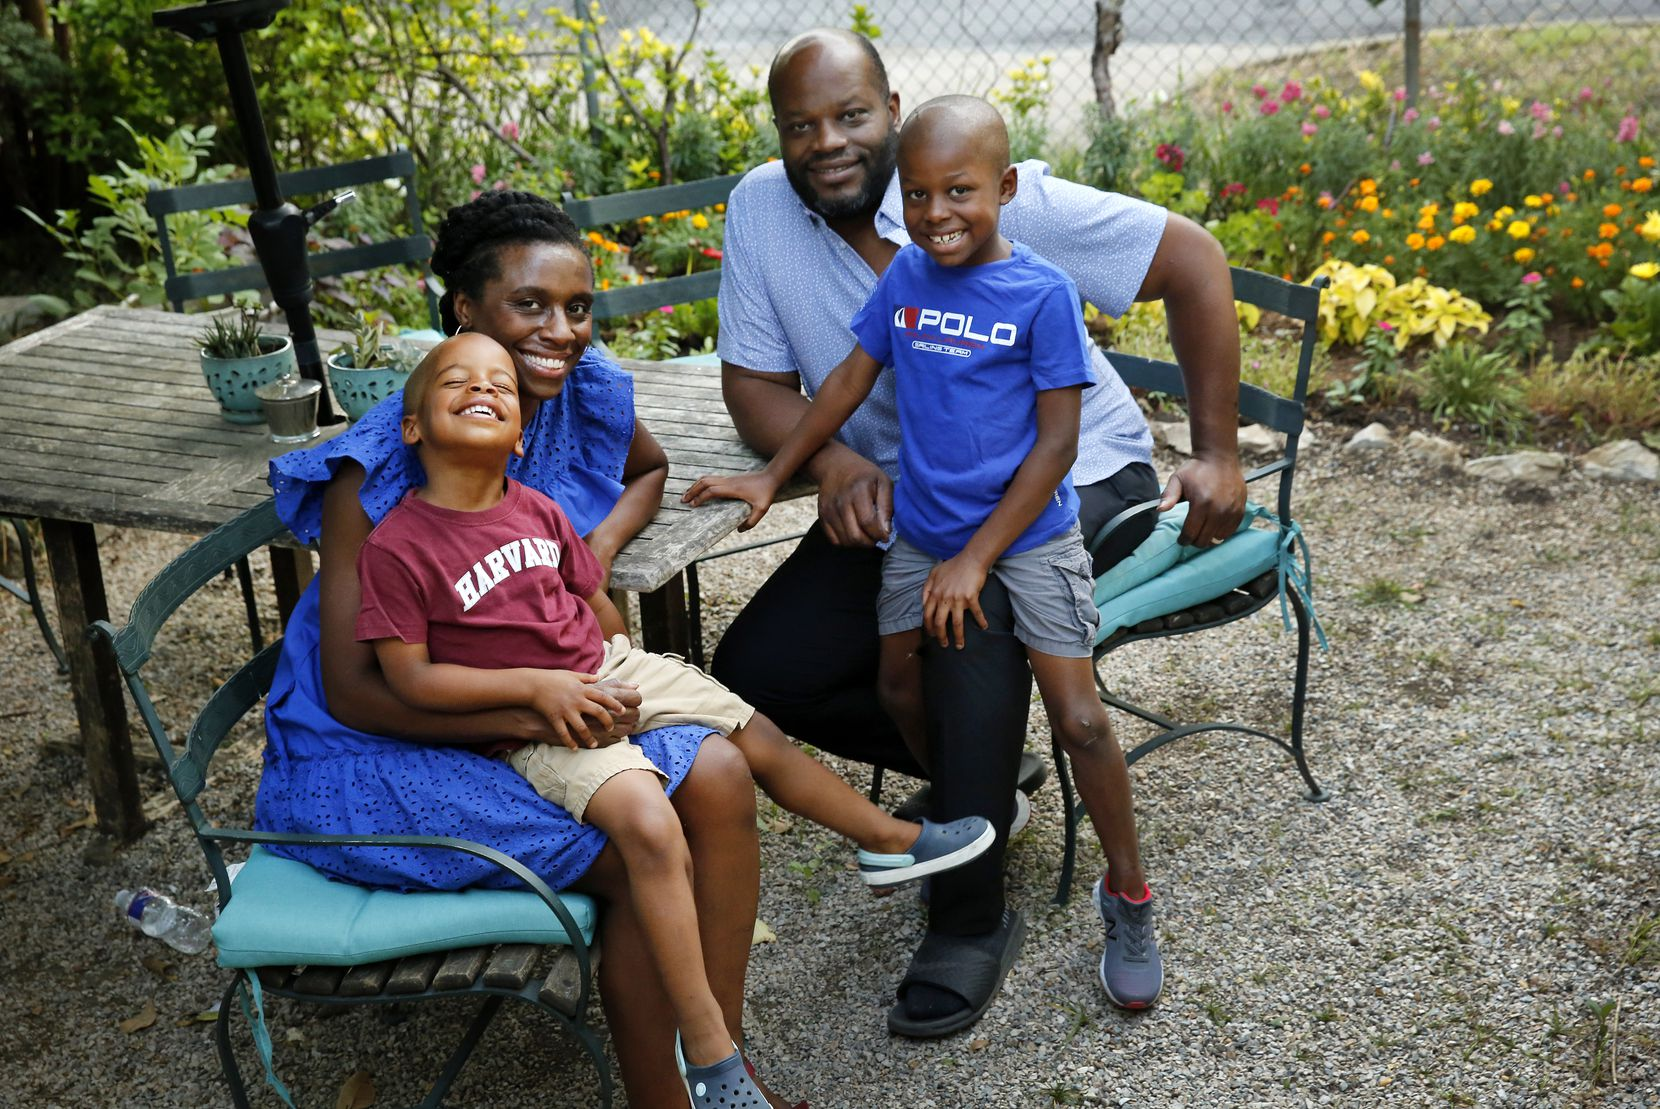 April Allen with her husband, Sean and their sons August (right) and Ellis at their Oak Cliff home last summer.